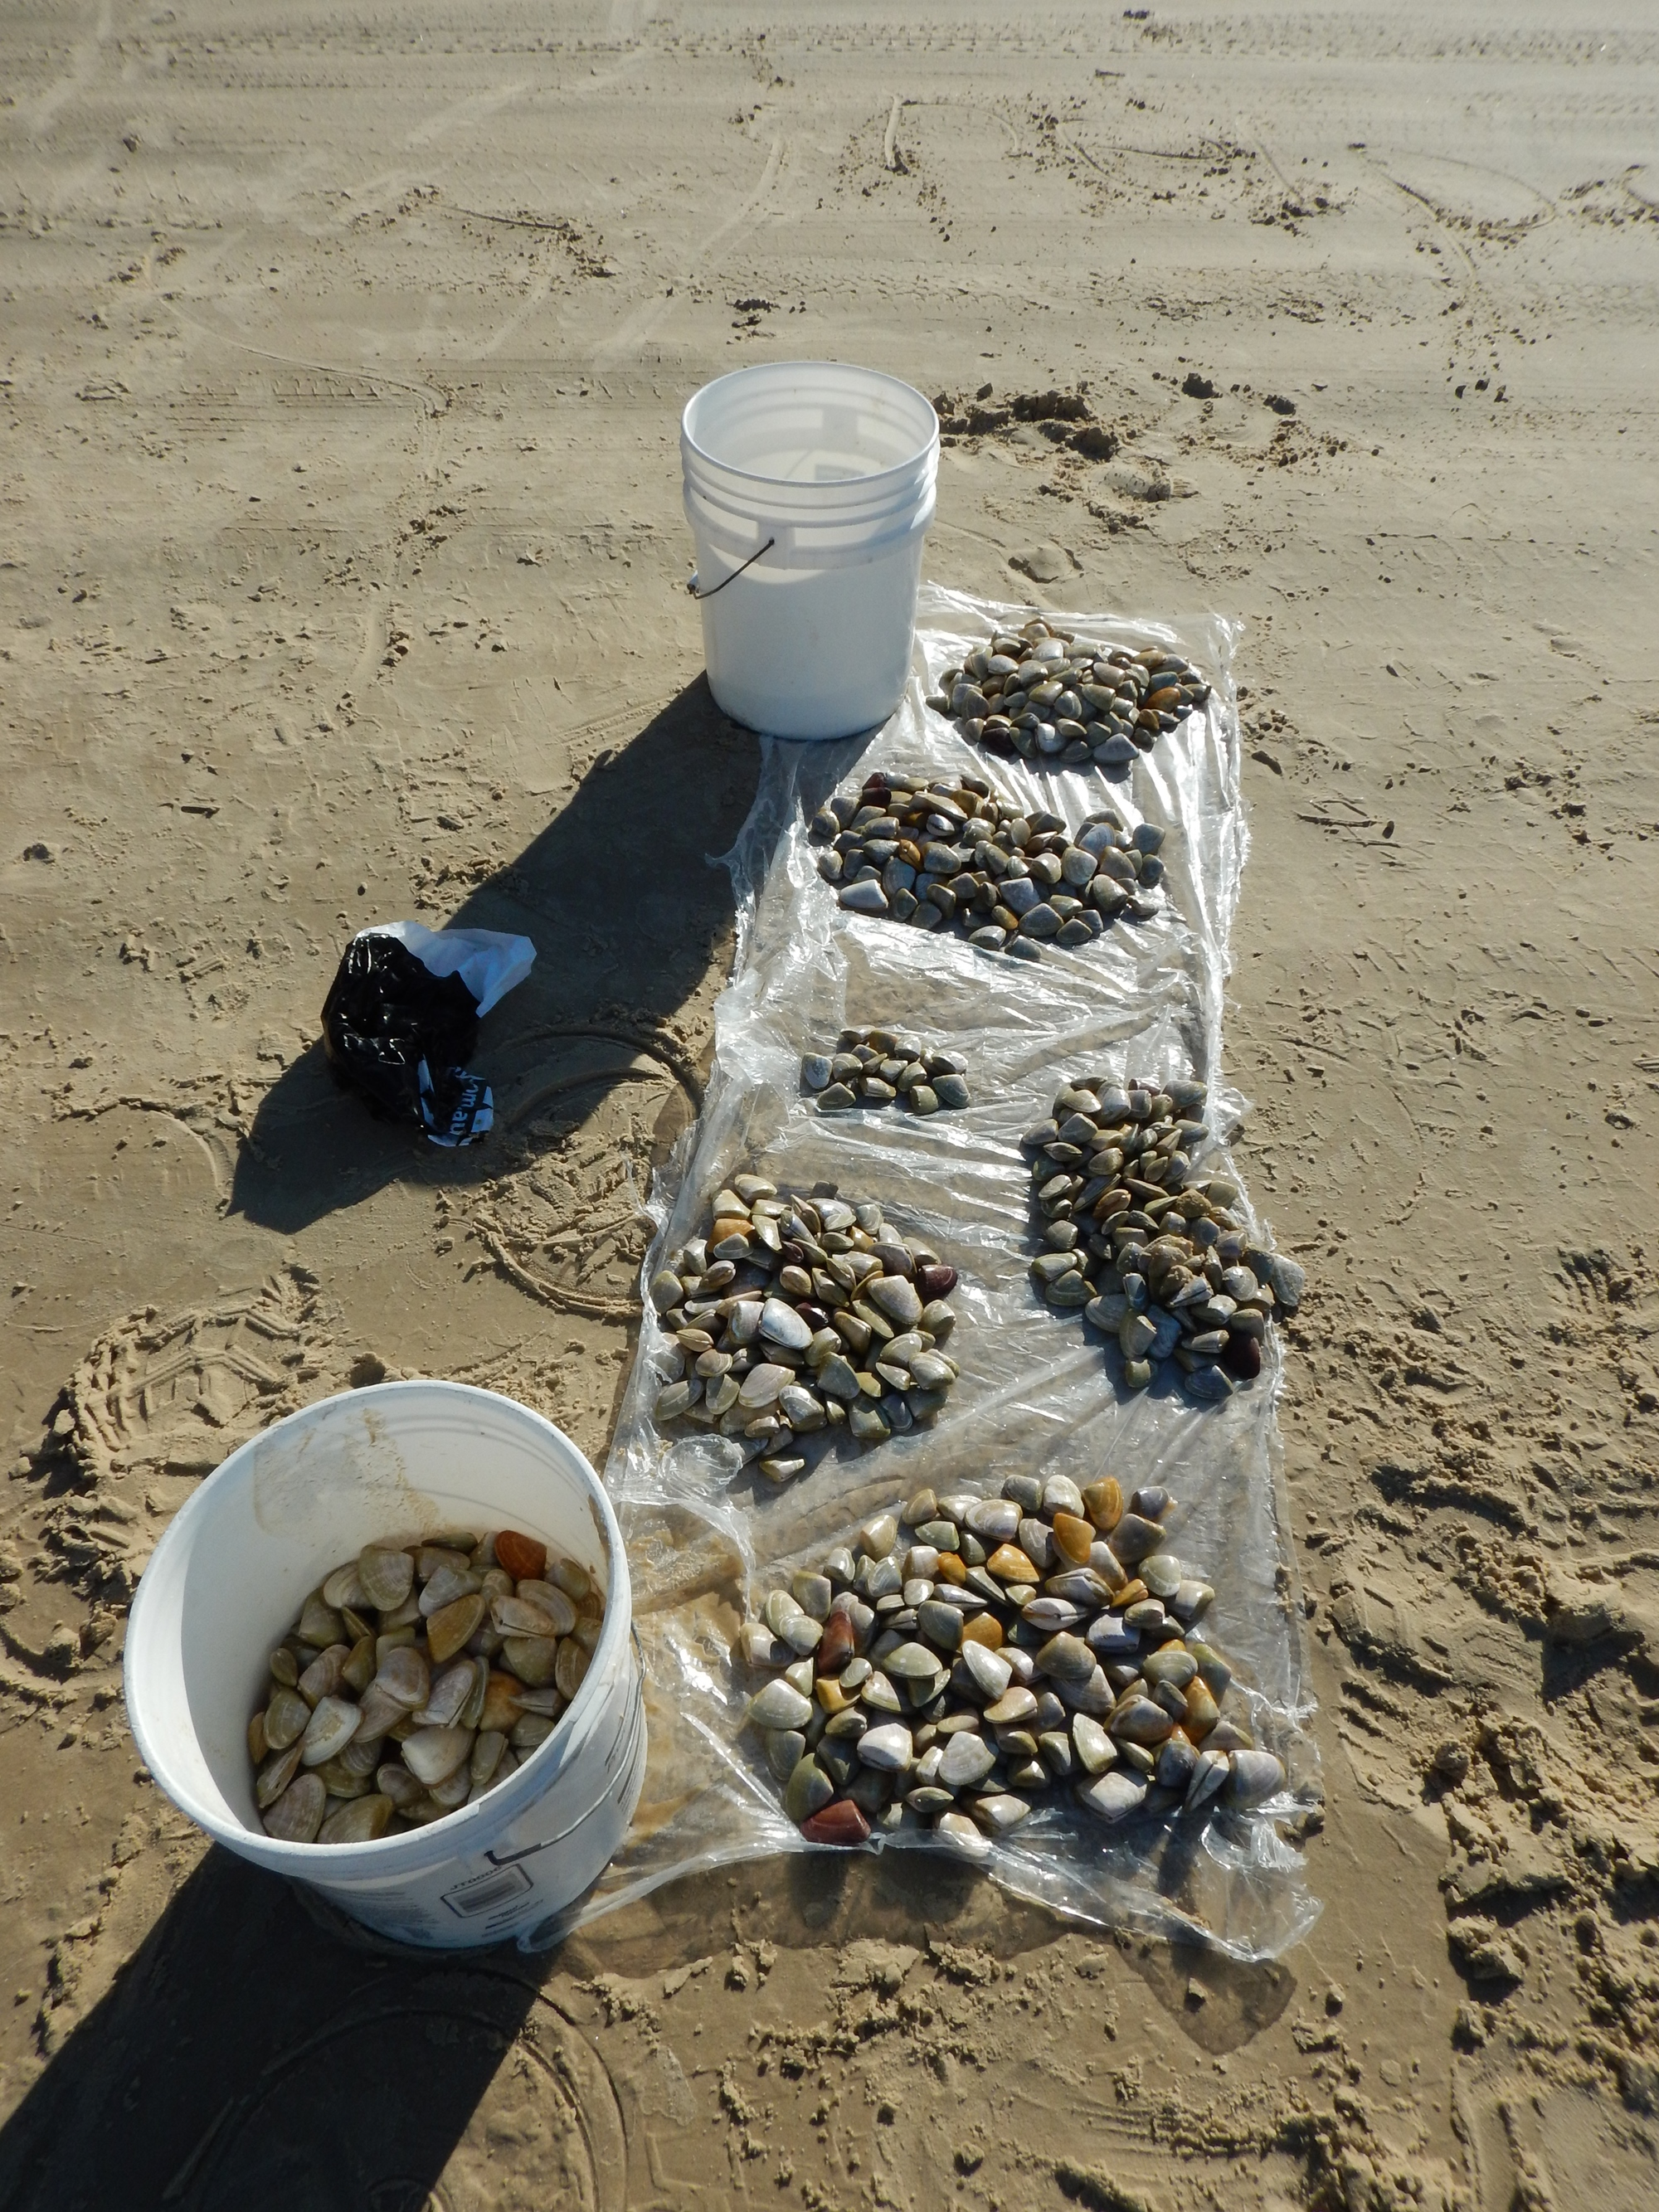 Excess pipis